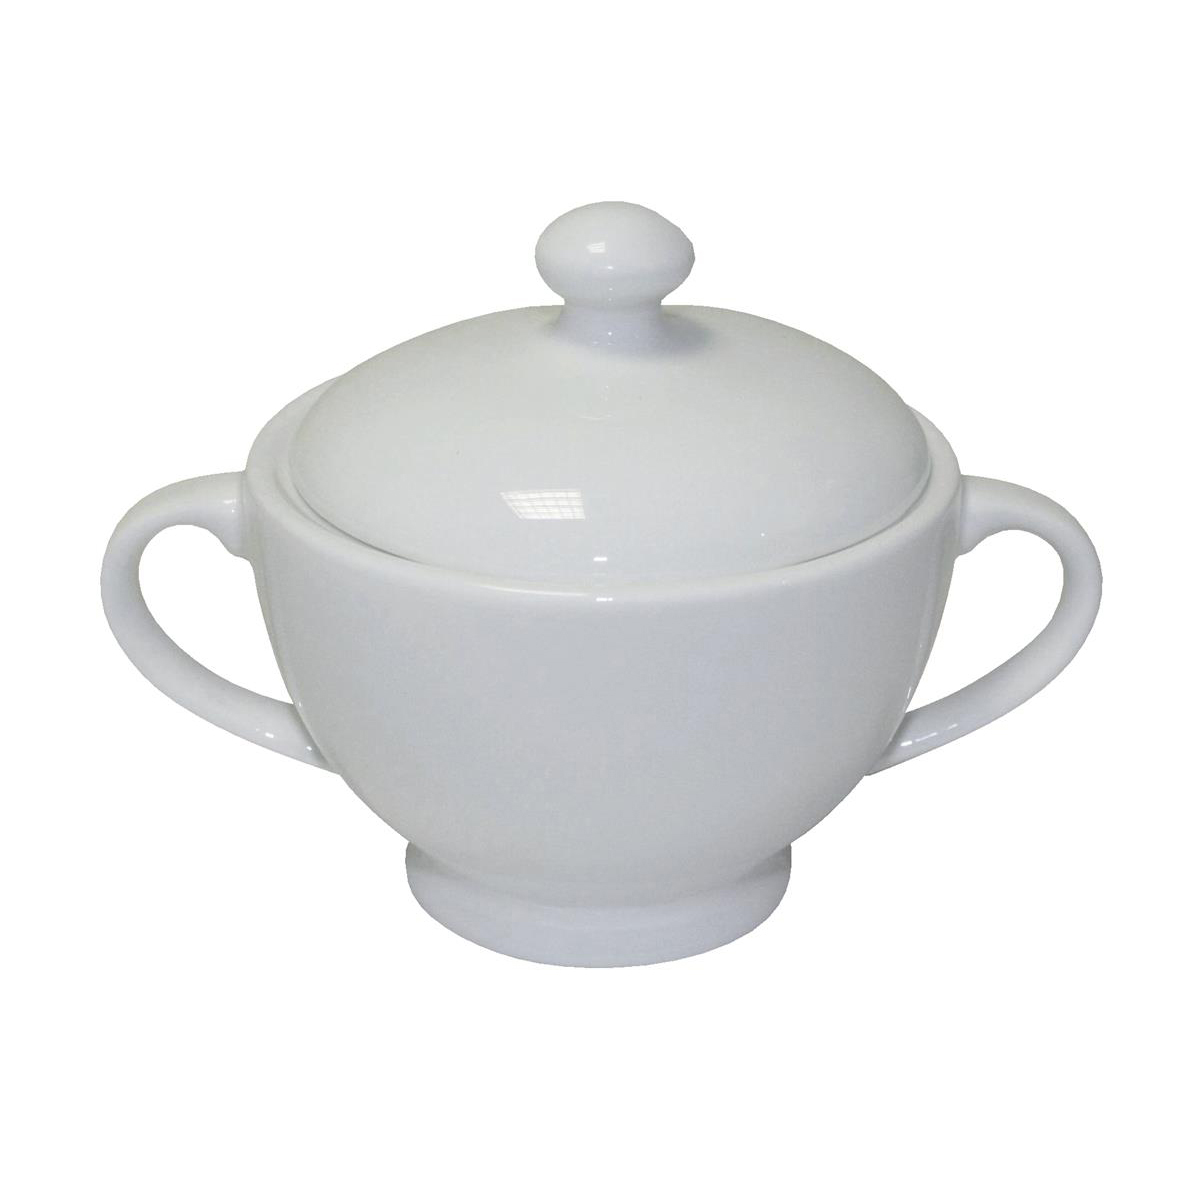 5 Star Facilities Fine Bone China Sugar Bowl and Jug White